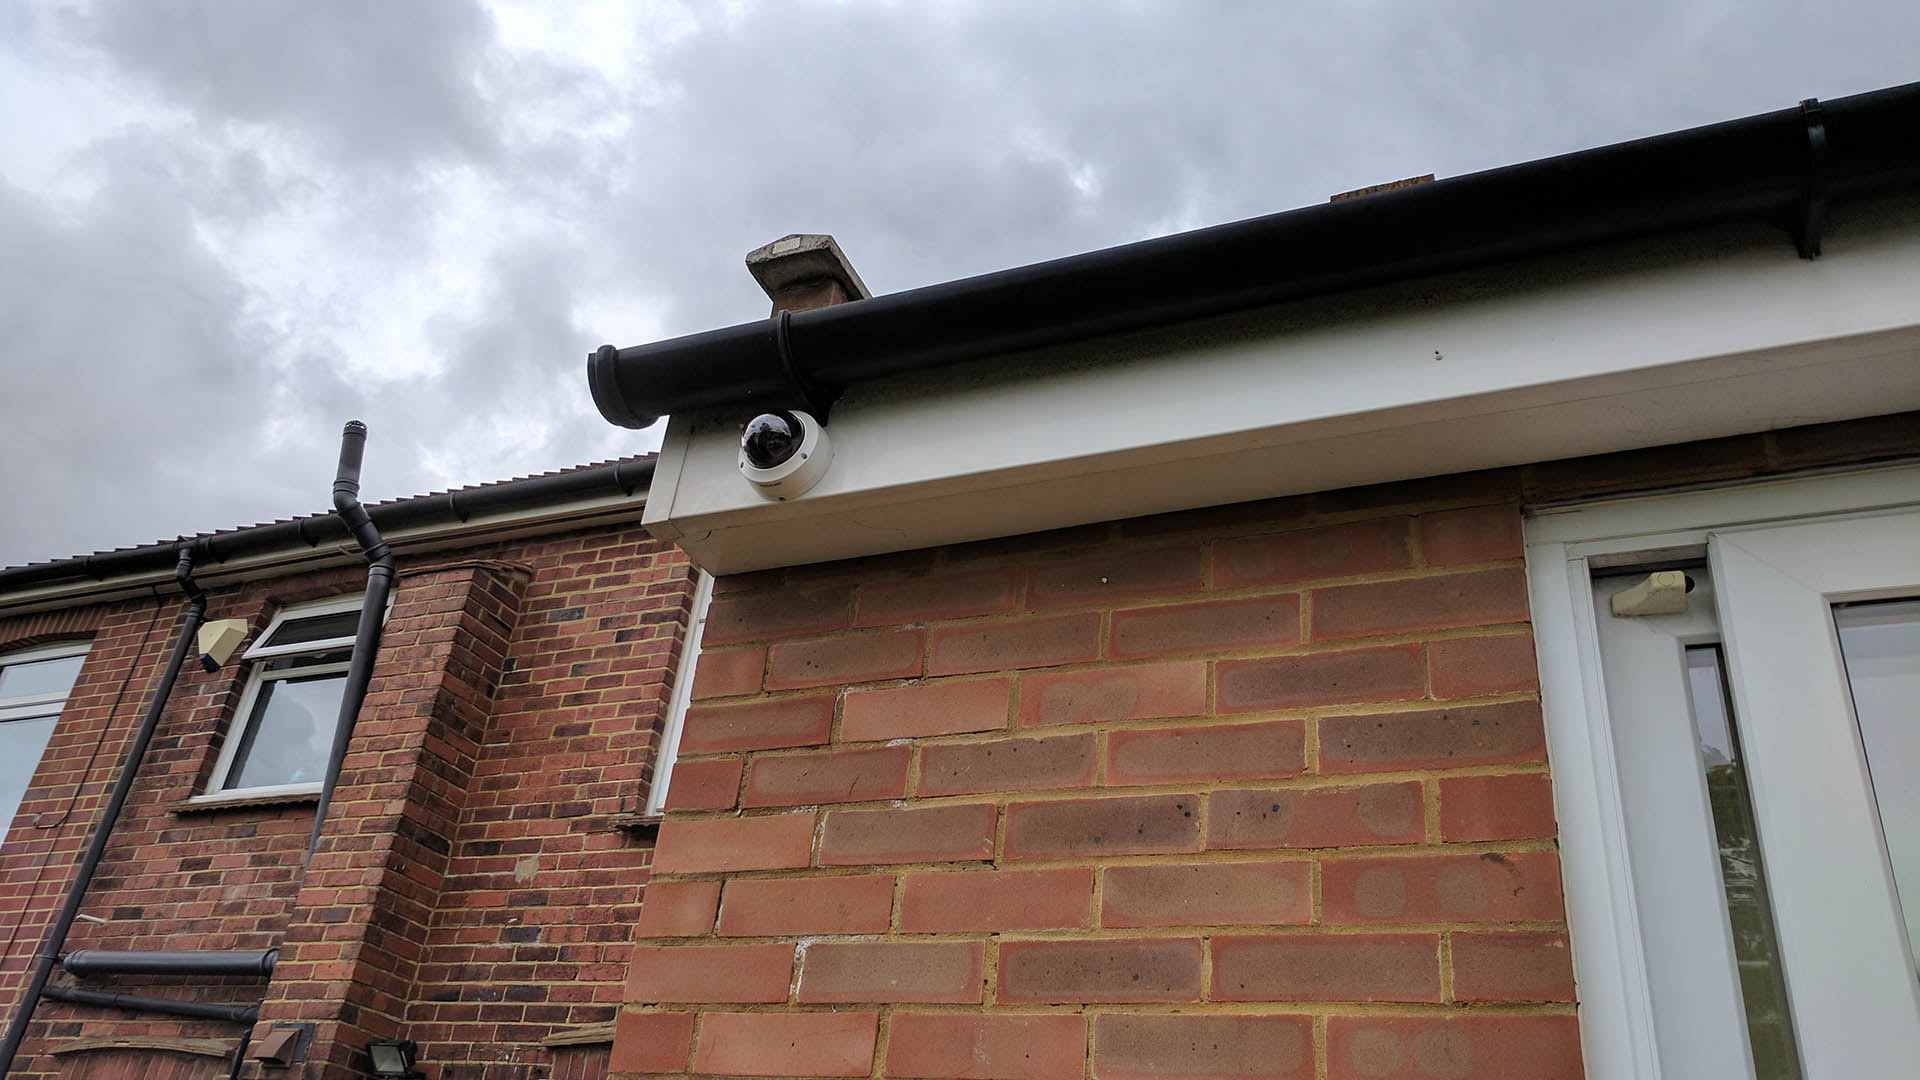 4K CCTV Installation in Rochester